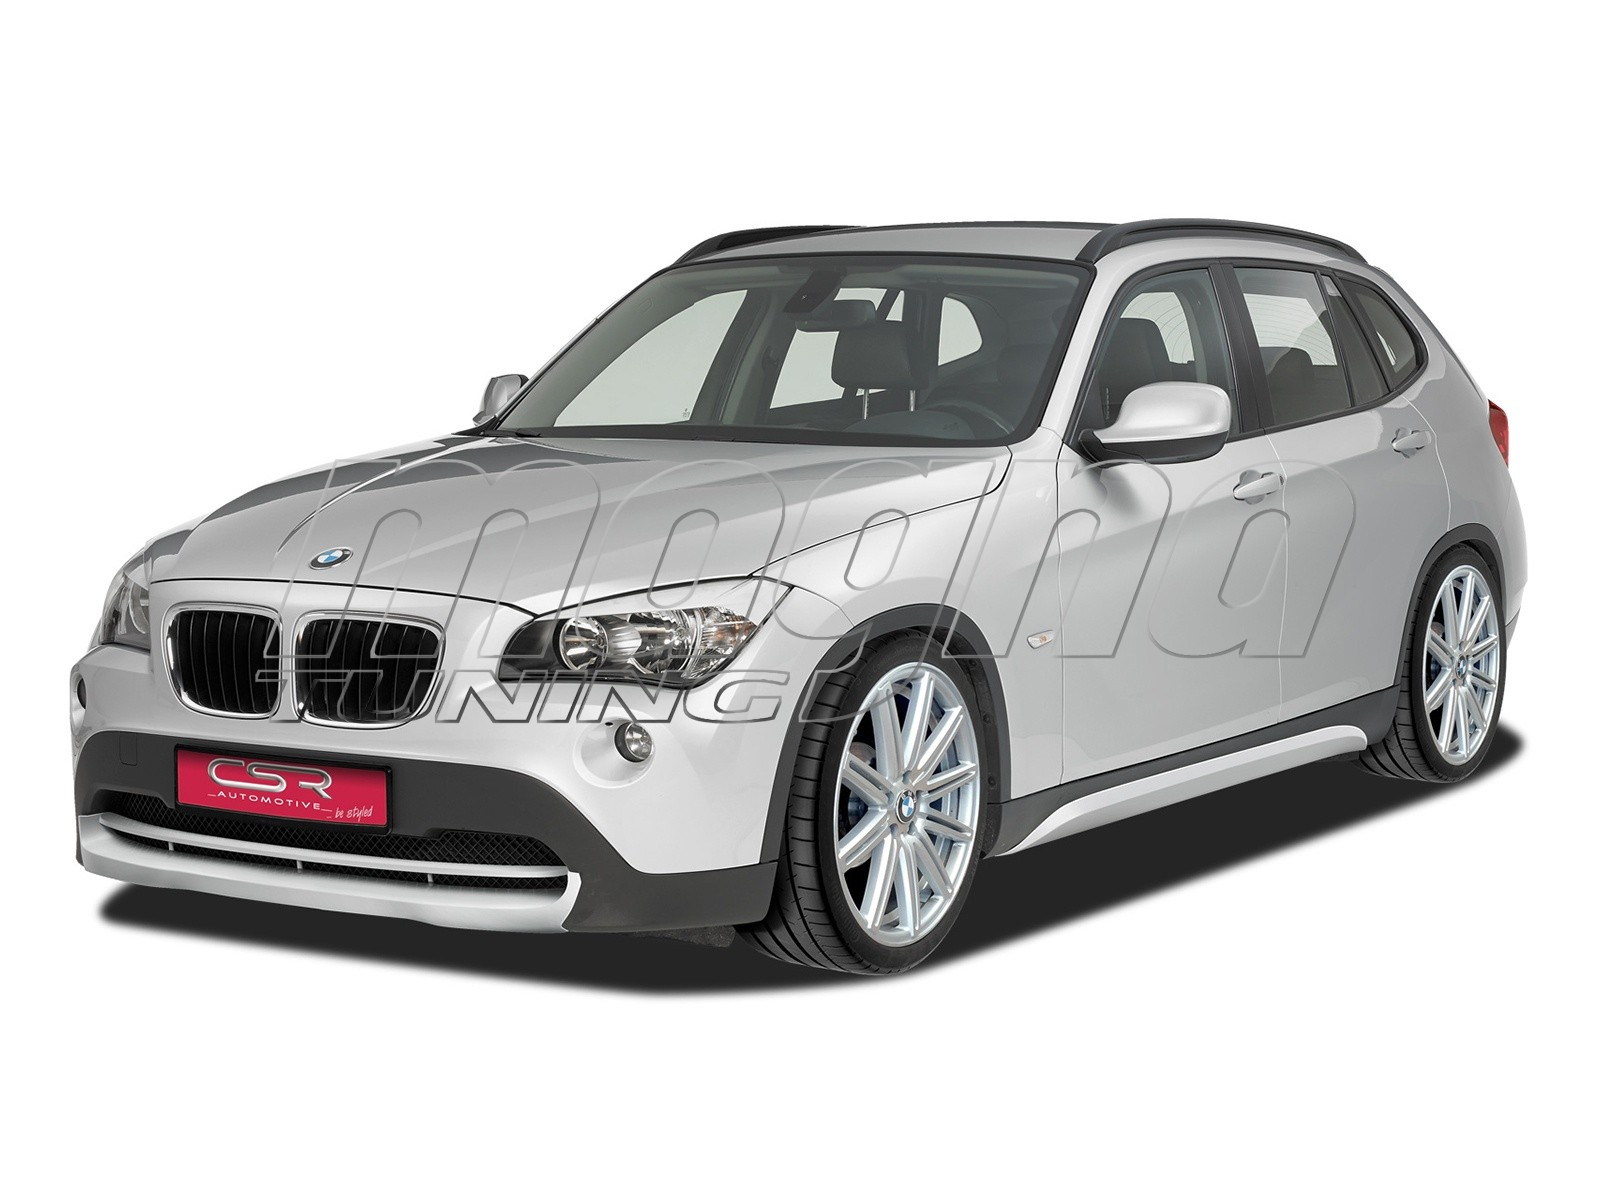 Bmw X1 E84 Newline Body Kit